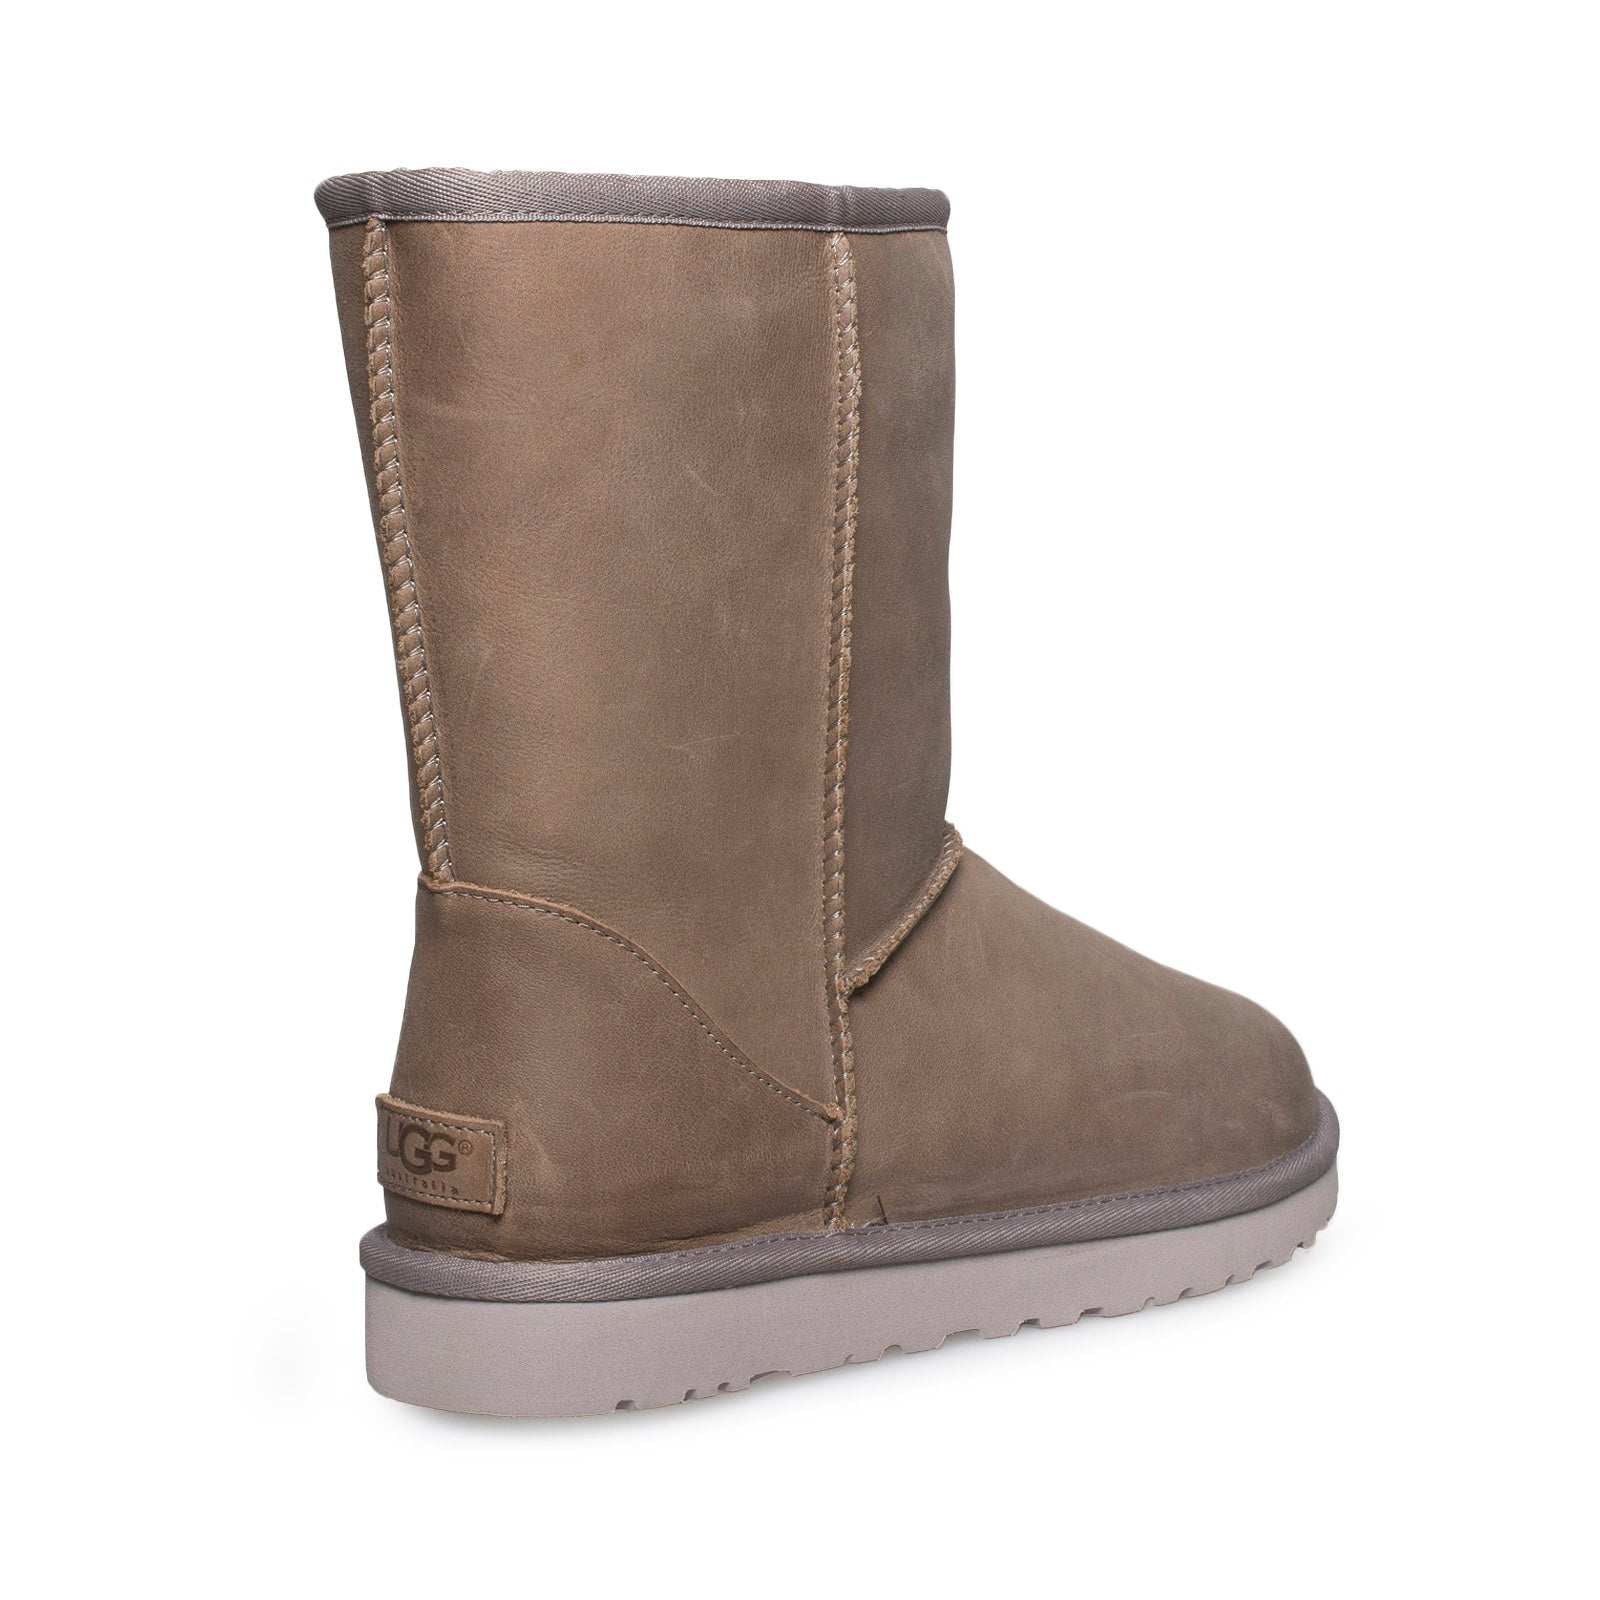 2a7de01b3c5 UGG Classic Short Leather Feather Boots